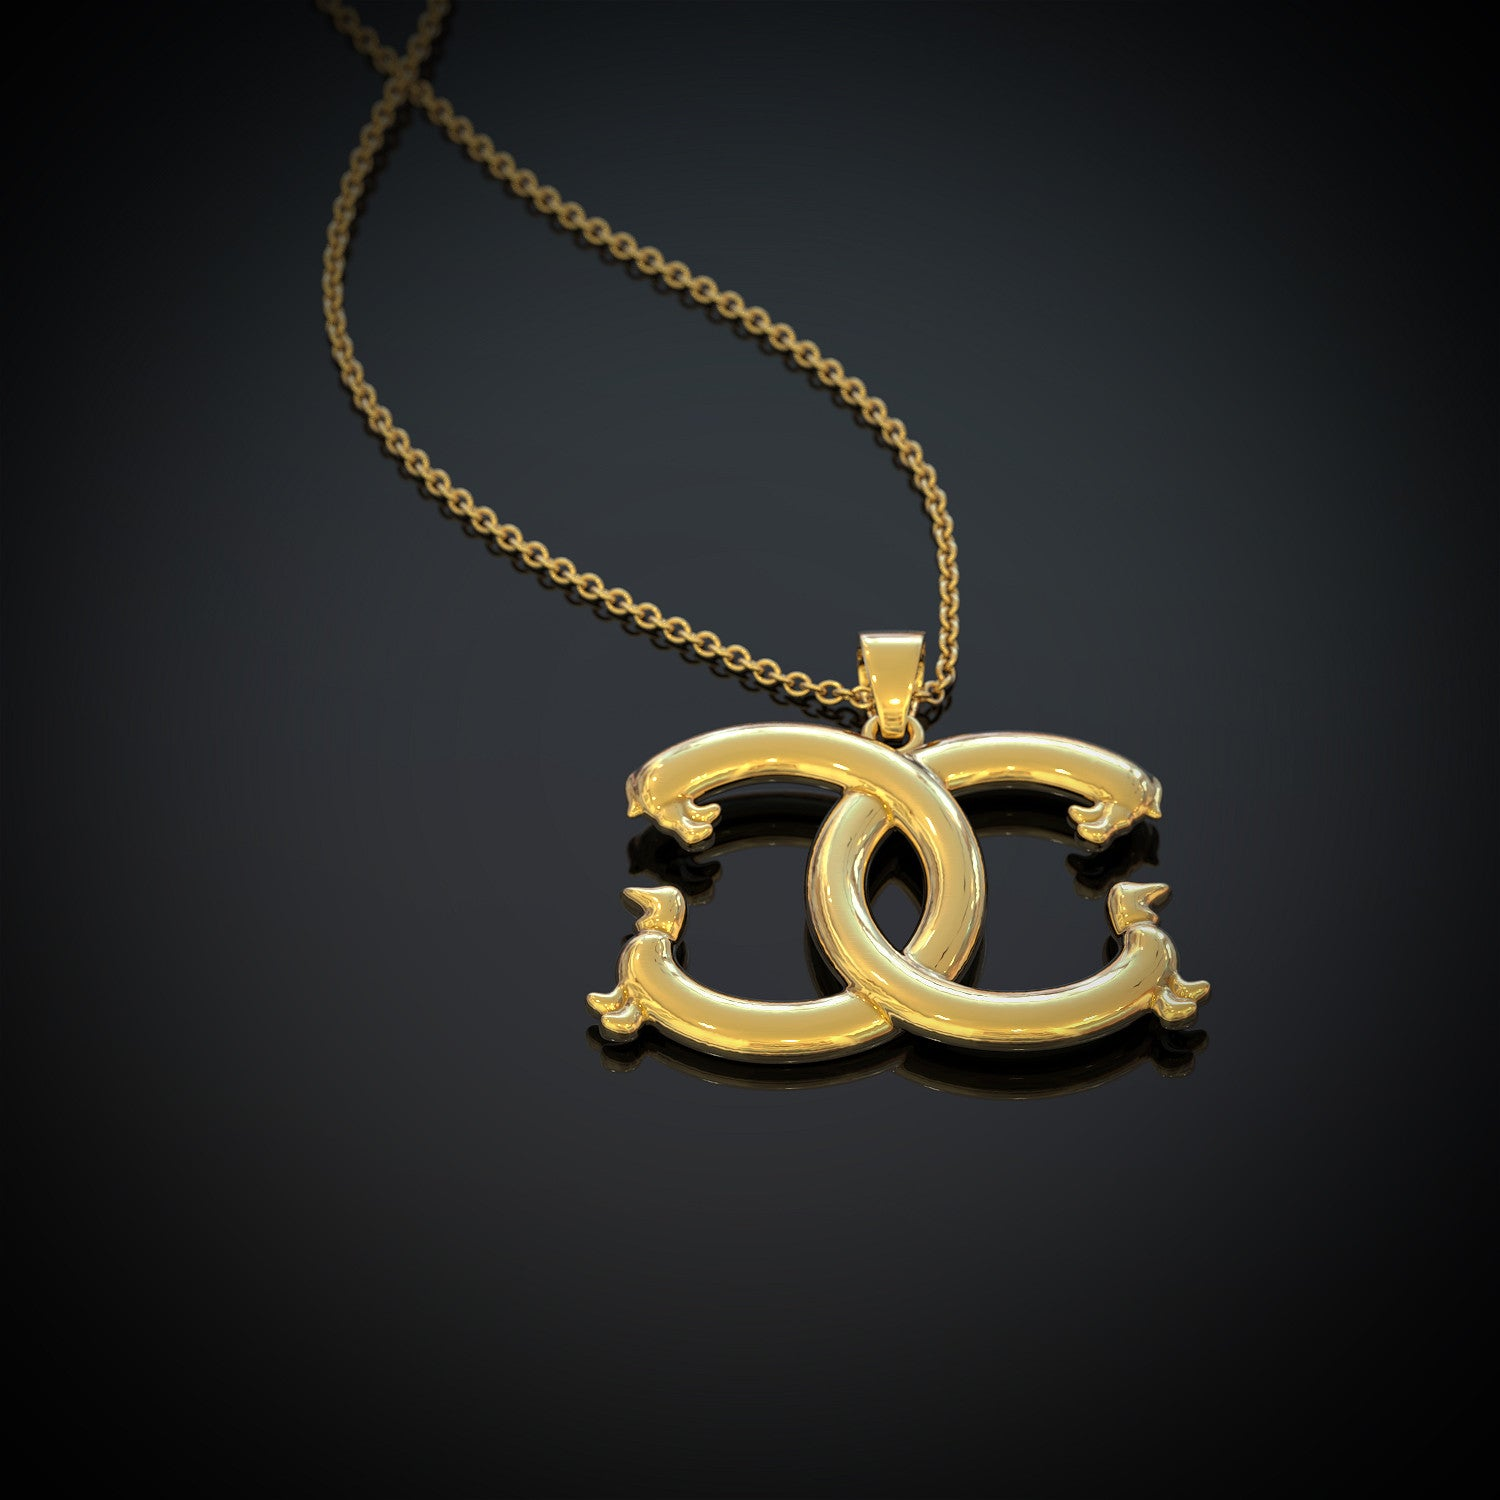 Wiener No 5 Necklace